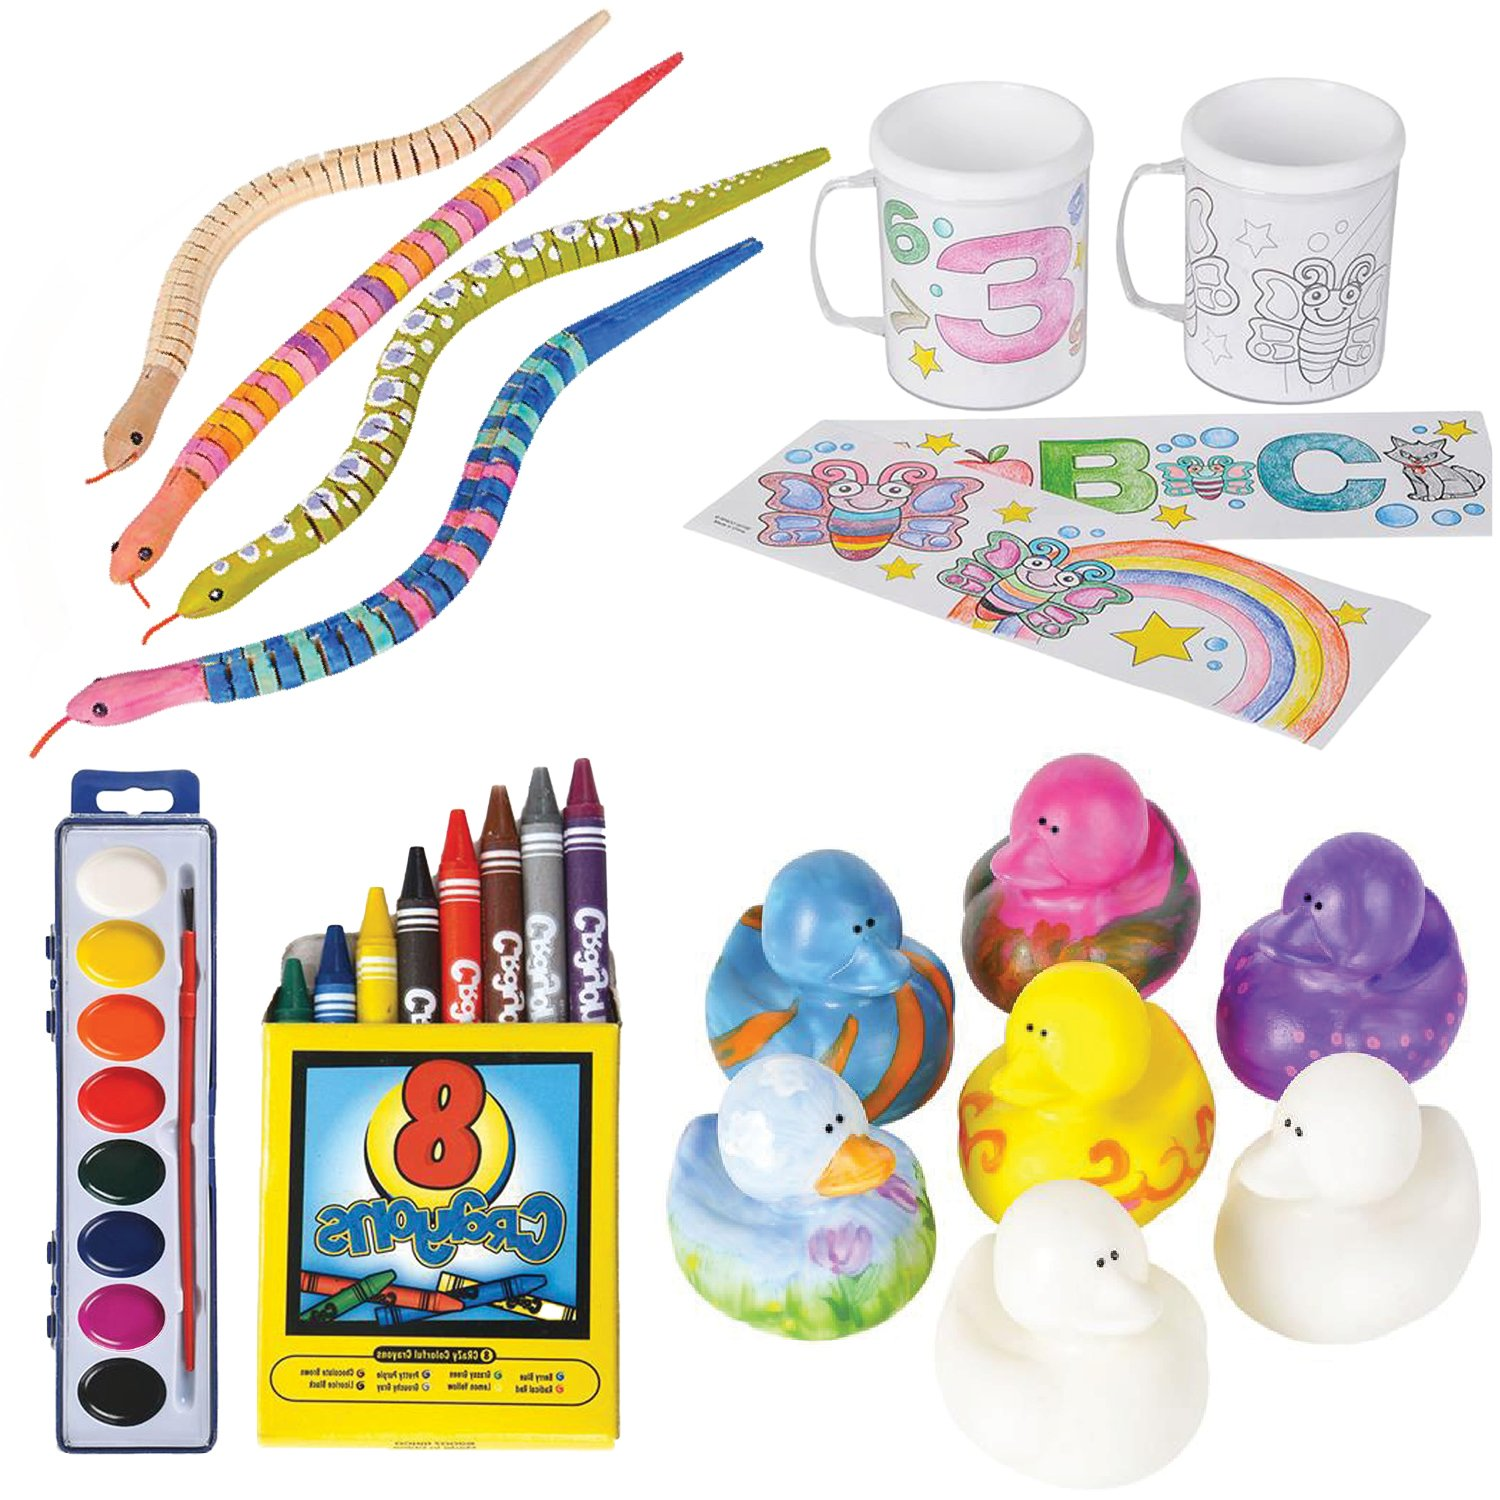 Design your Own Coloring Set by ArtCreativity - Complete Kids Arts & Crafts Kit with 12 Vinyl Duckies, 4 Wooden Snakes, 2 Coloring Mugs, Washable Watercolor Paint and Crayons - Fun, Safe & Non-Toxic